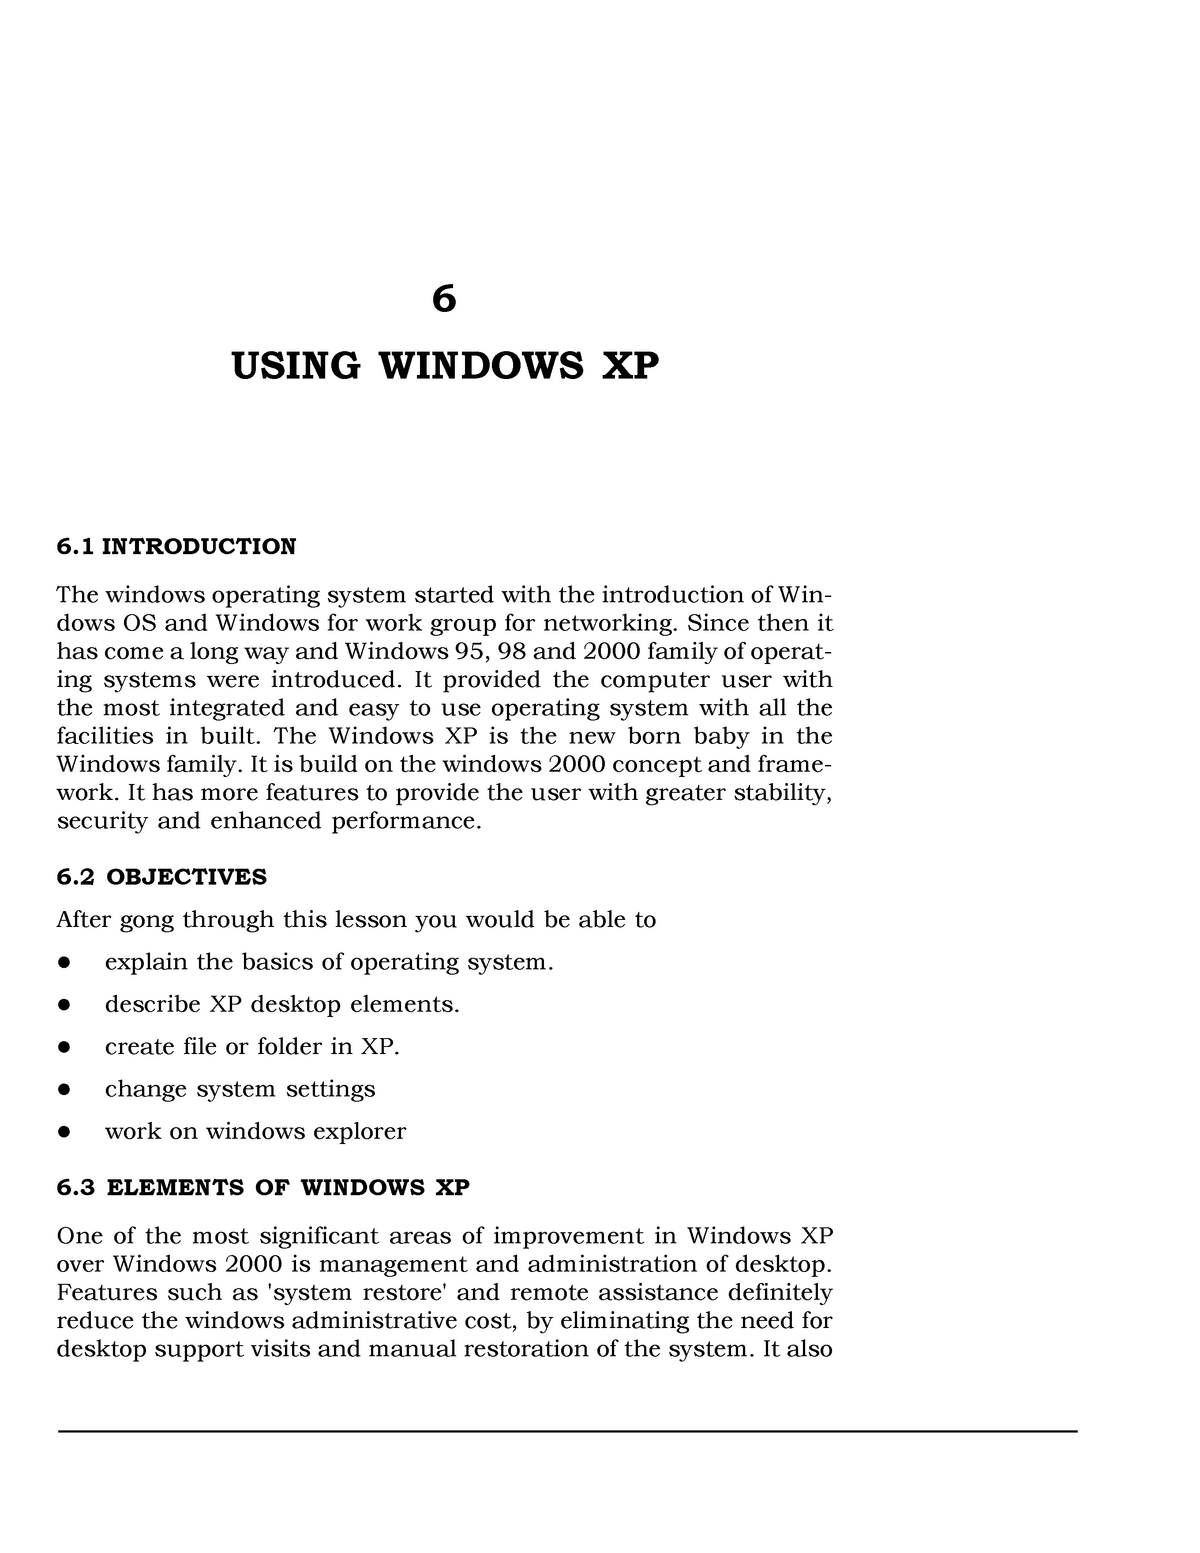 L6 - Using Windows XP - These are notes to help with